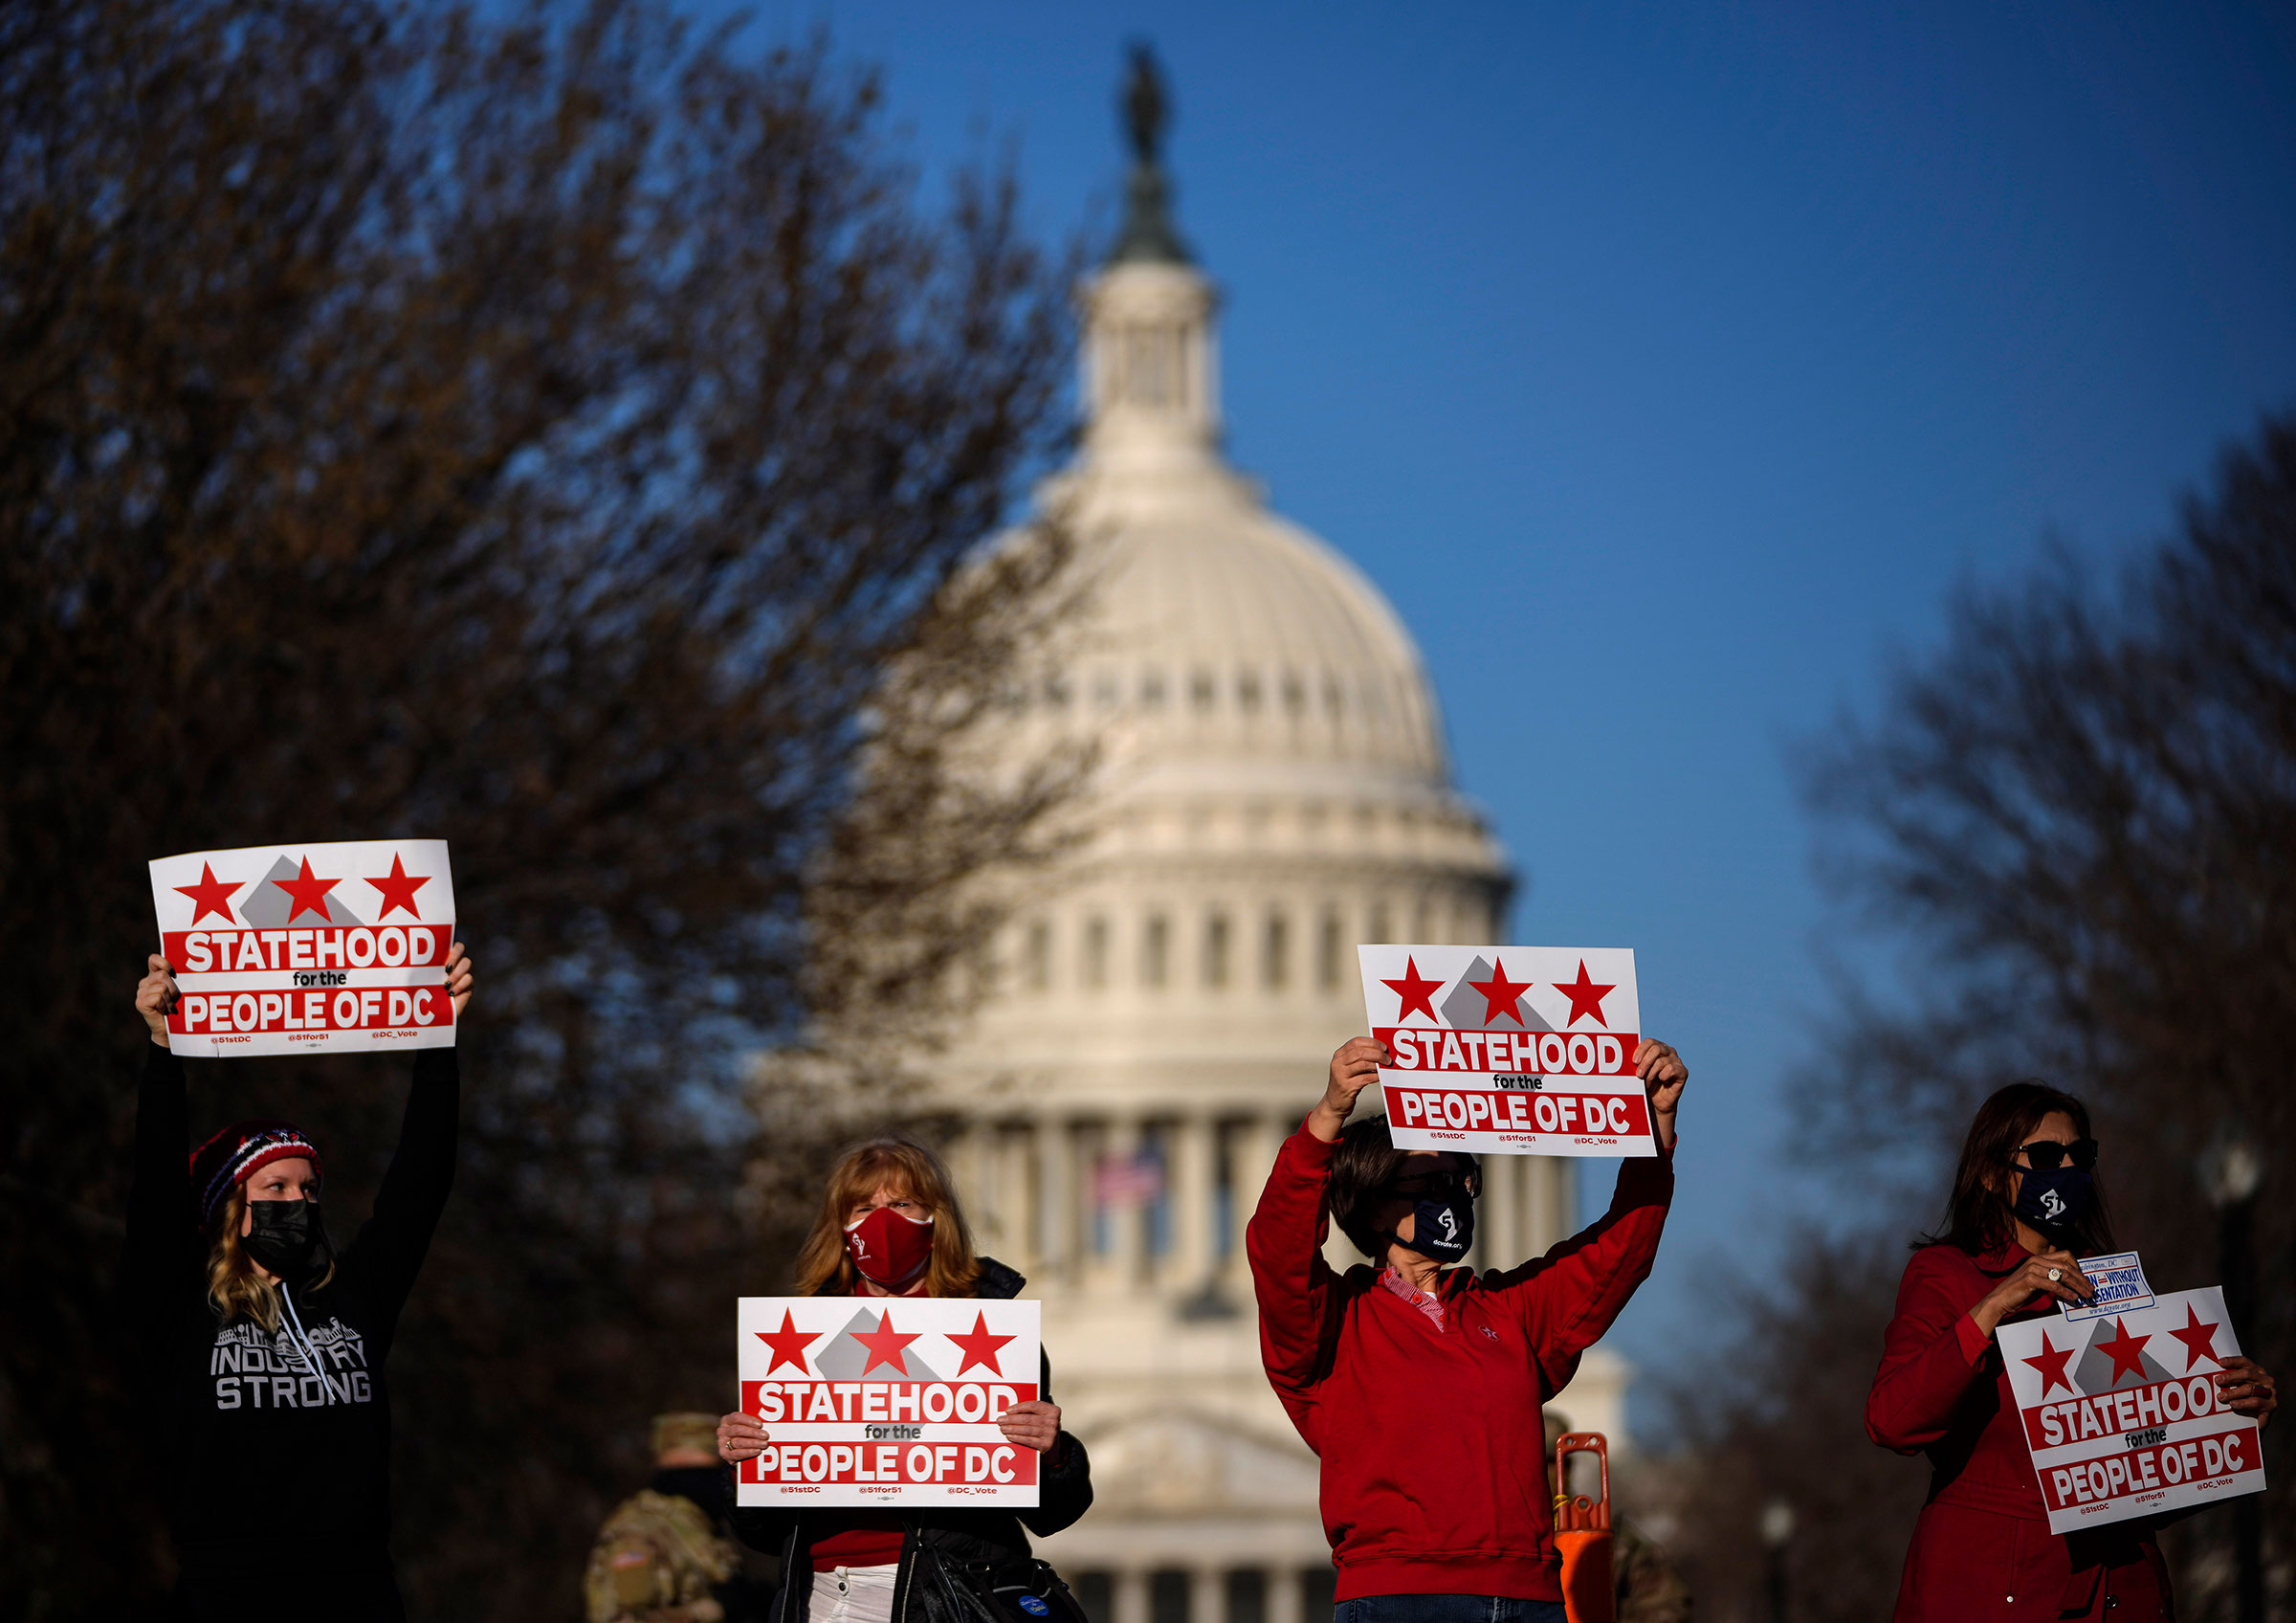 Residents of D.C. rally for statehood near the Capitol in Washington on March 22, 2021.